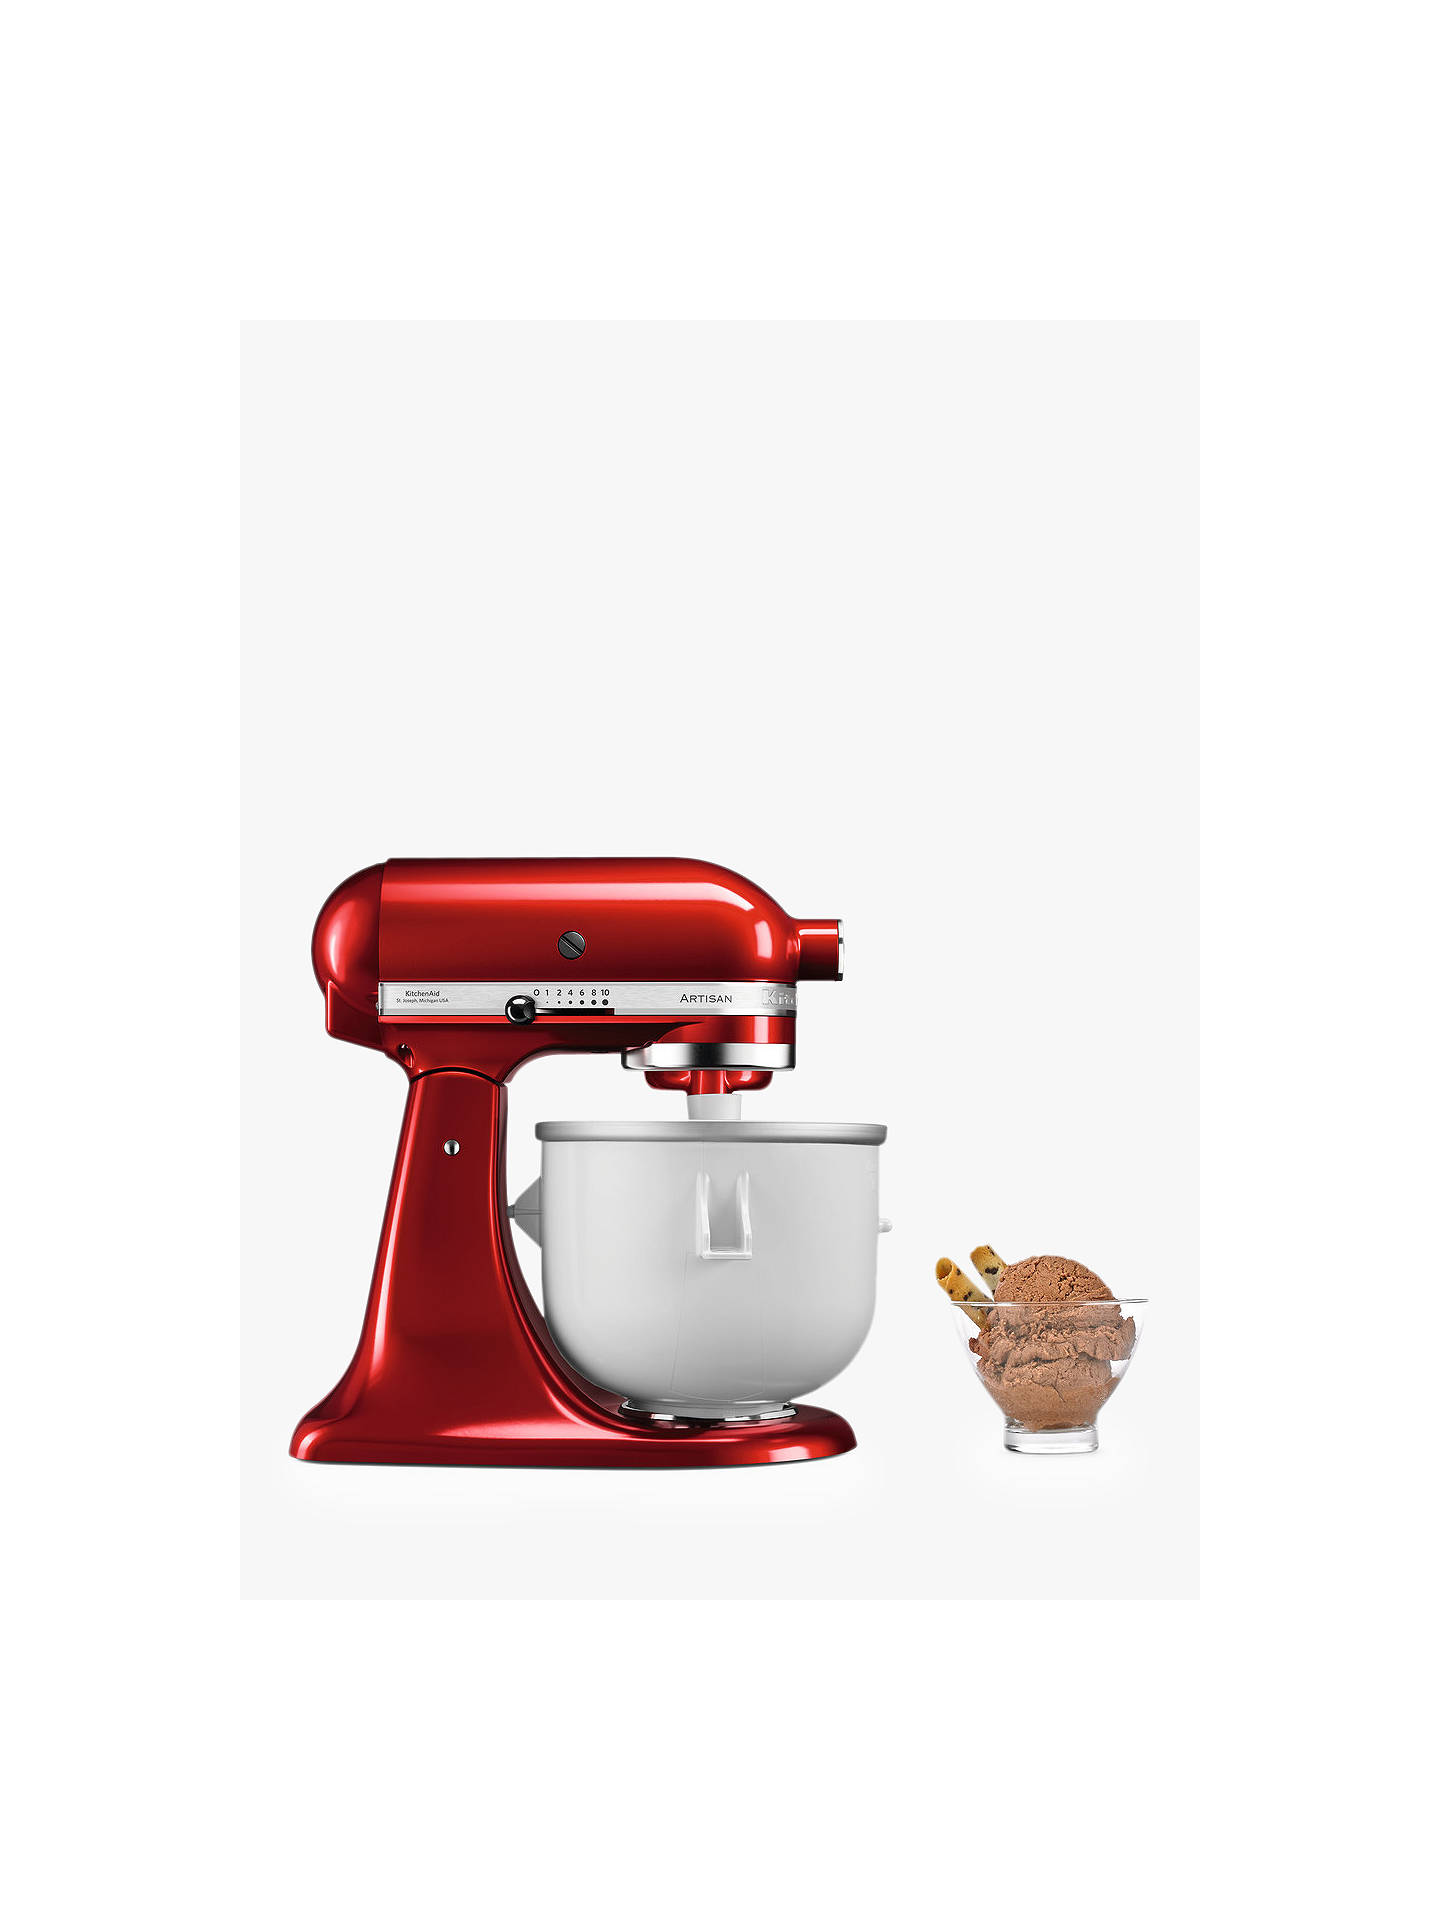 Kitchenaid Ice Cream Maker Accessory For Stand Mixer